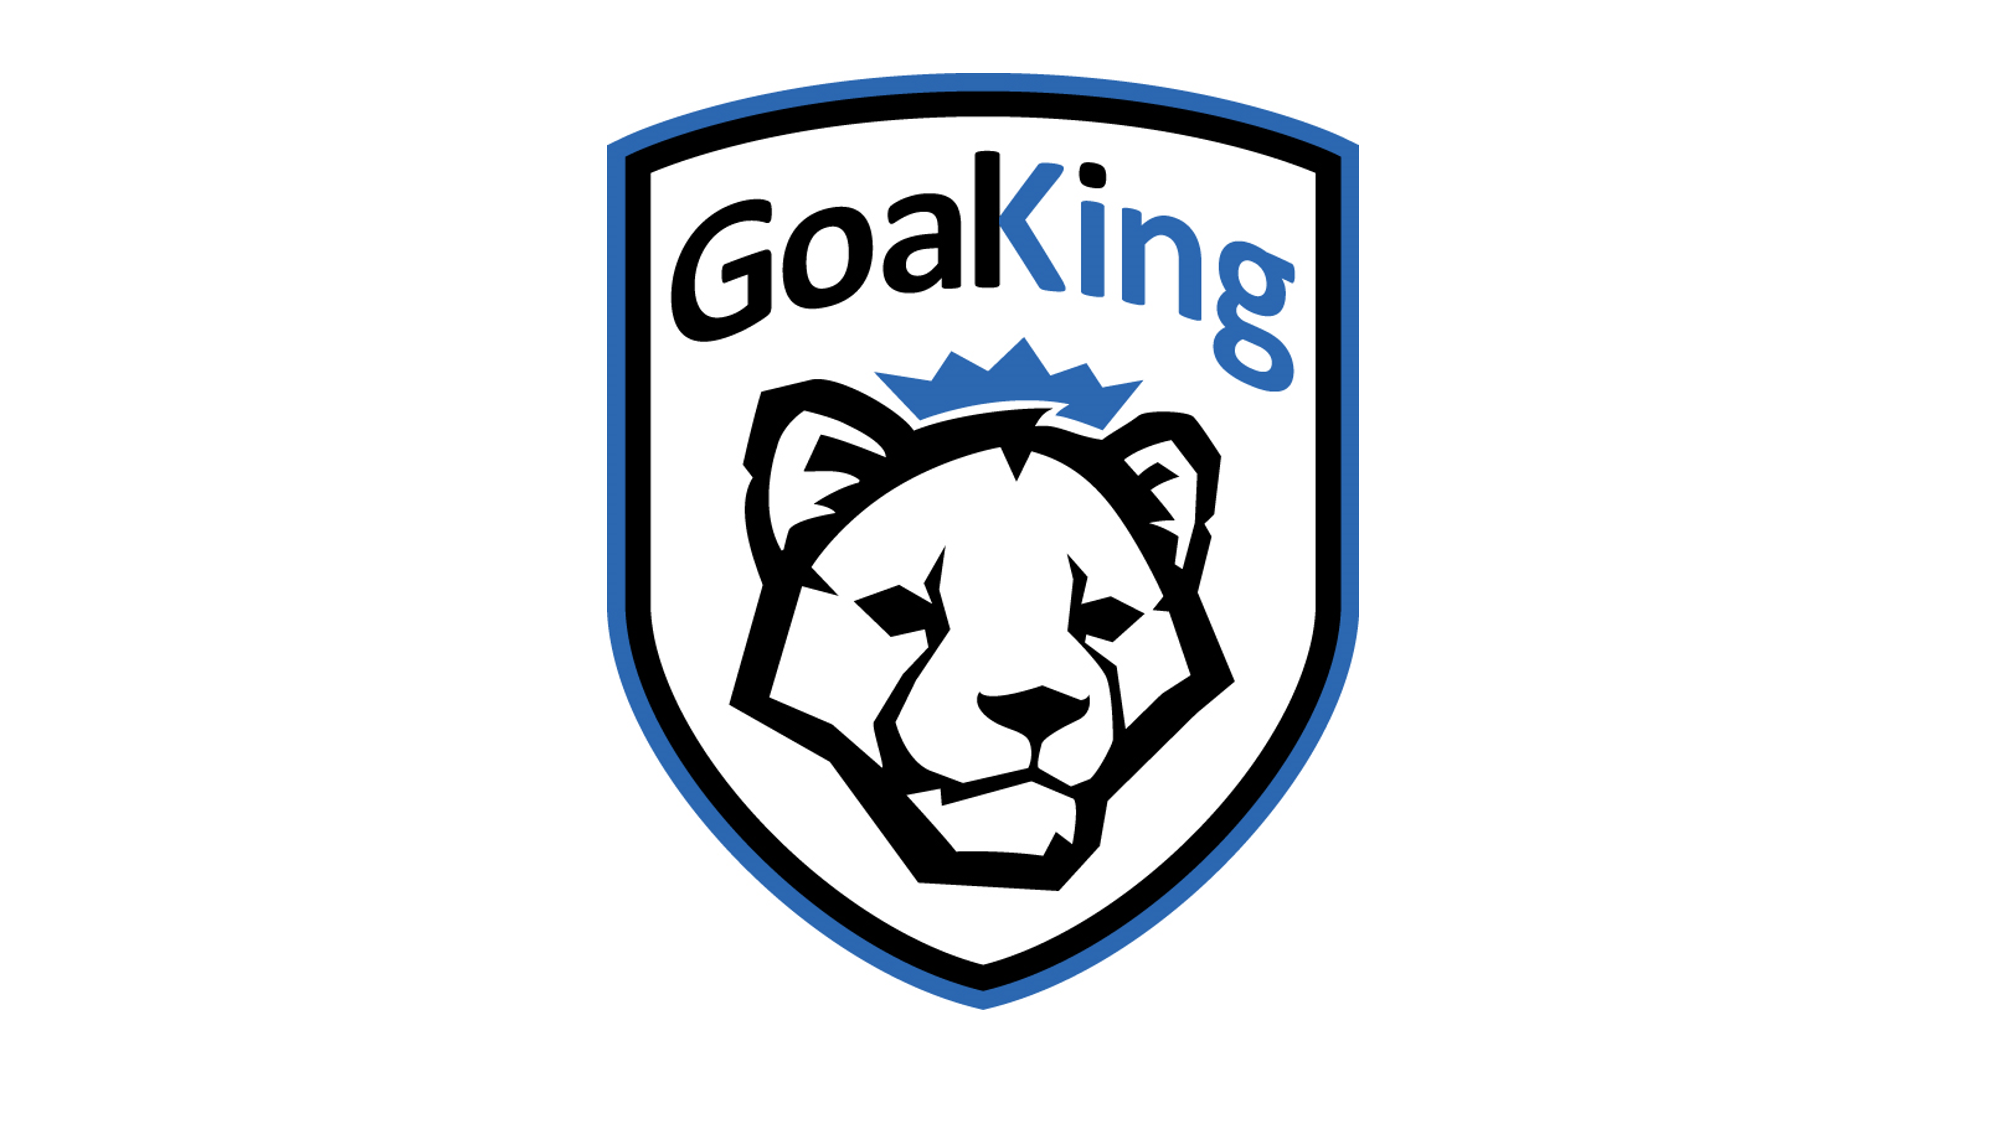 GOALKING Junior Stars - For youth players 10 to 12 years old